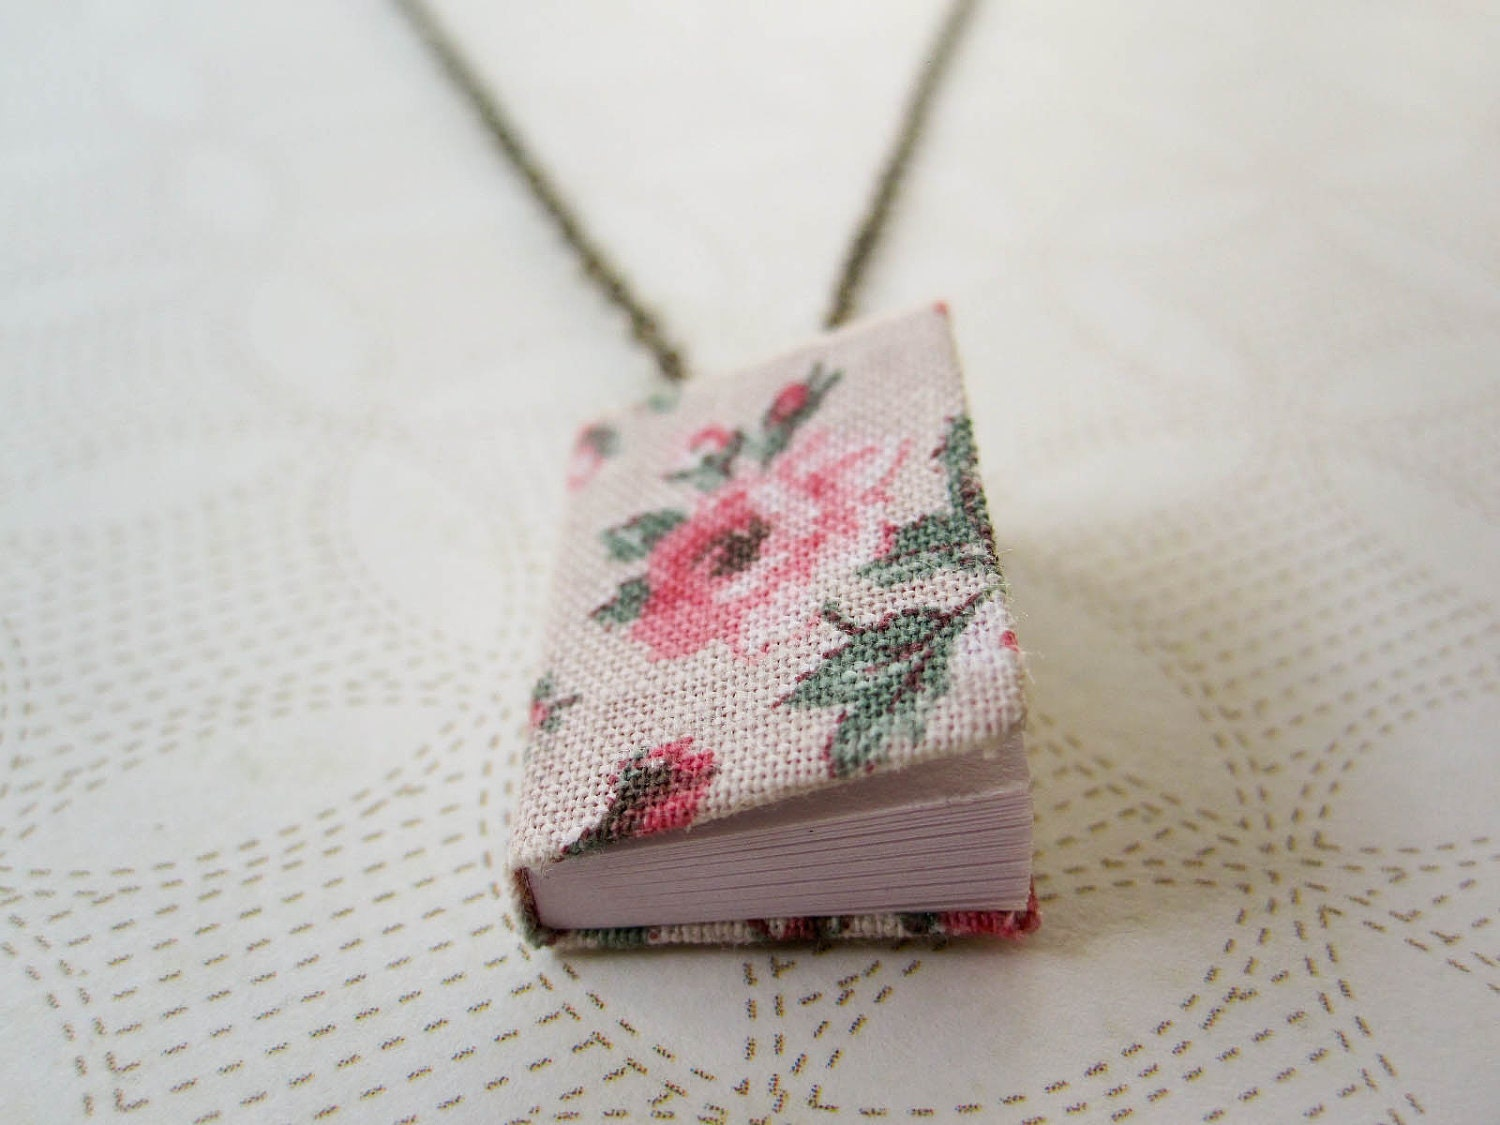 Tiny Book Necklace - Journal Necklace - Book Jewelry - Miniature - Shabby Chic Jewelry - Little Thoughts